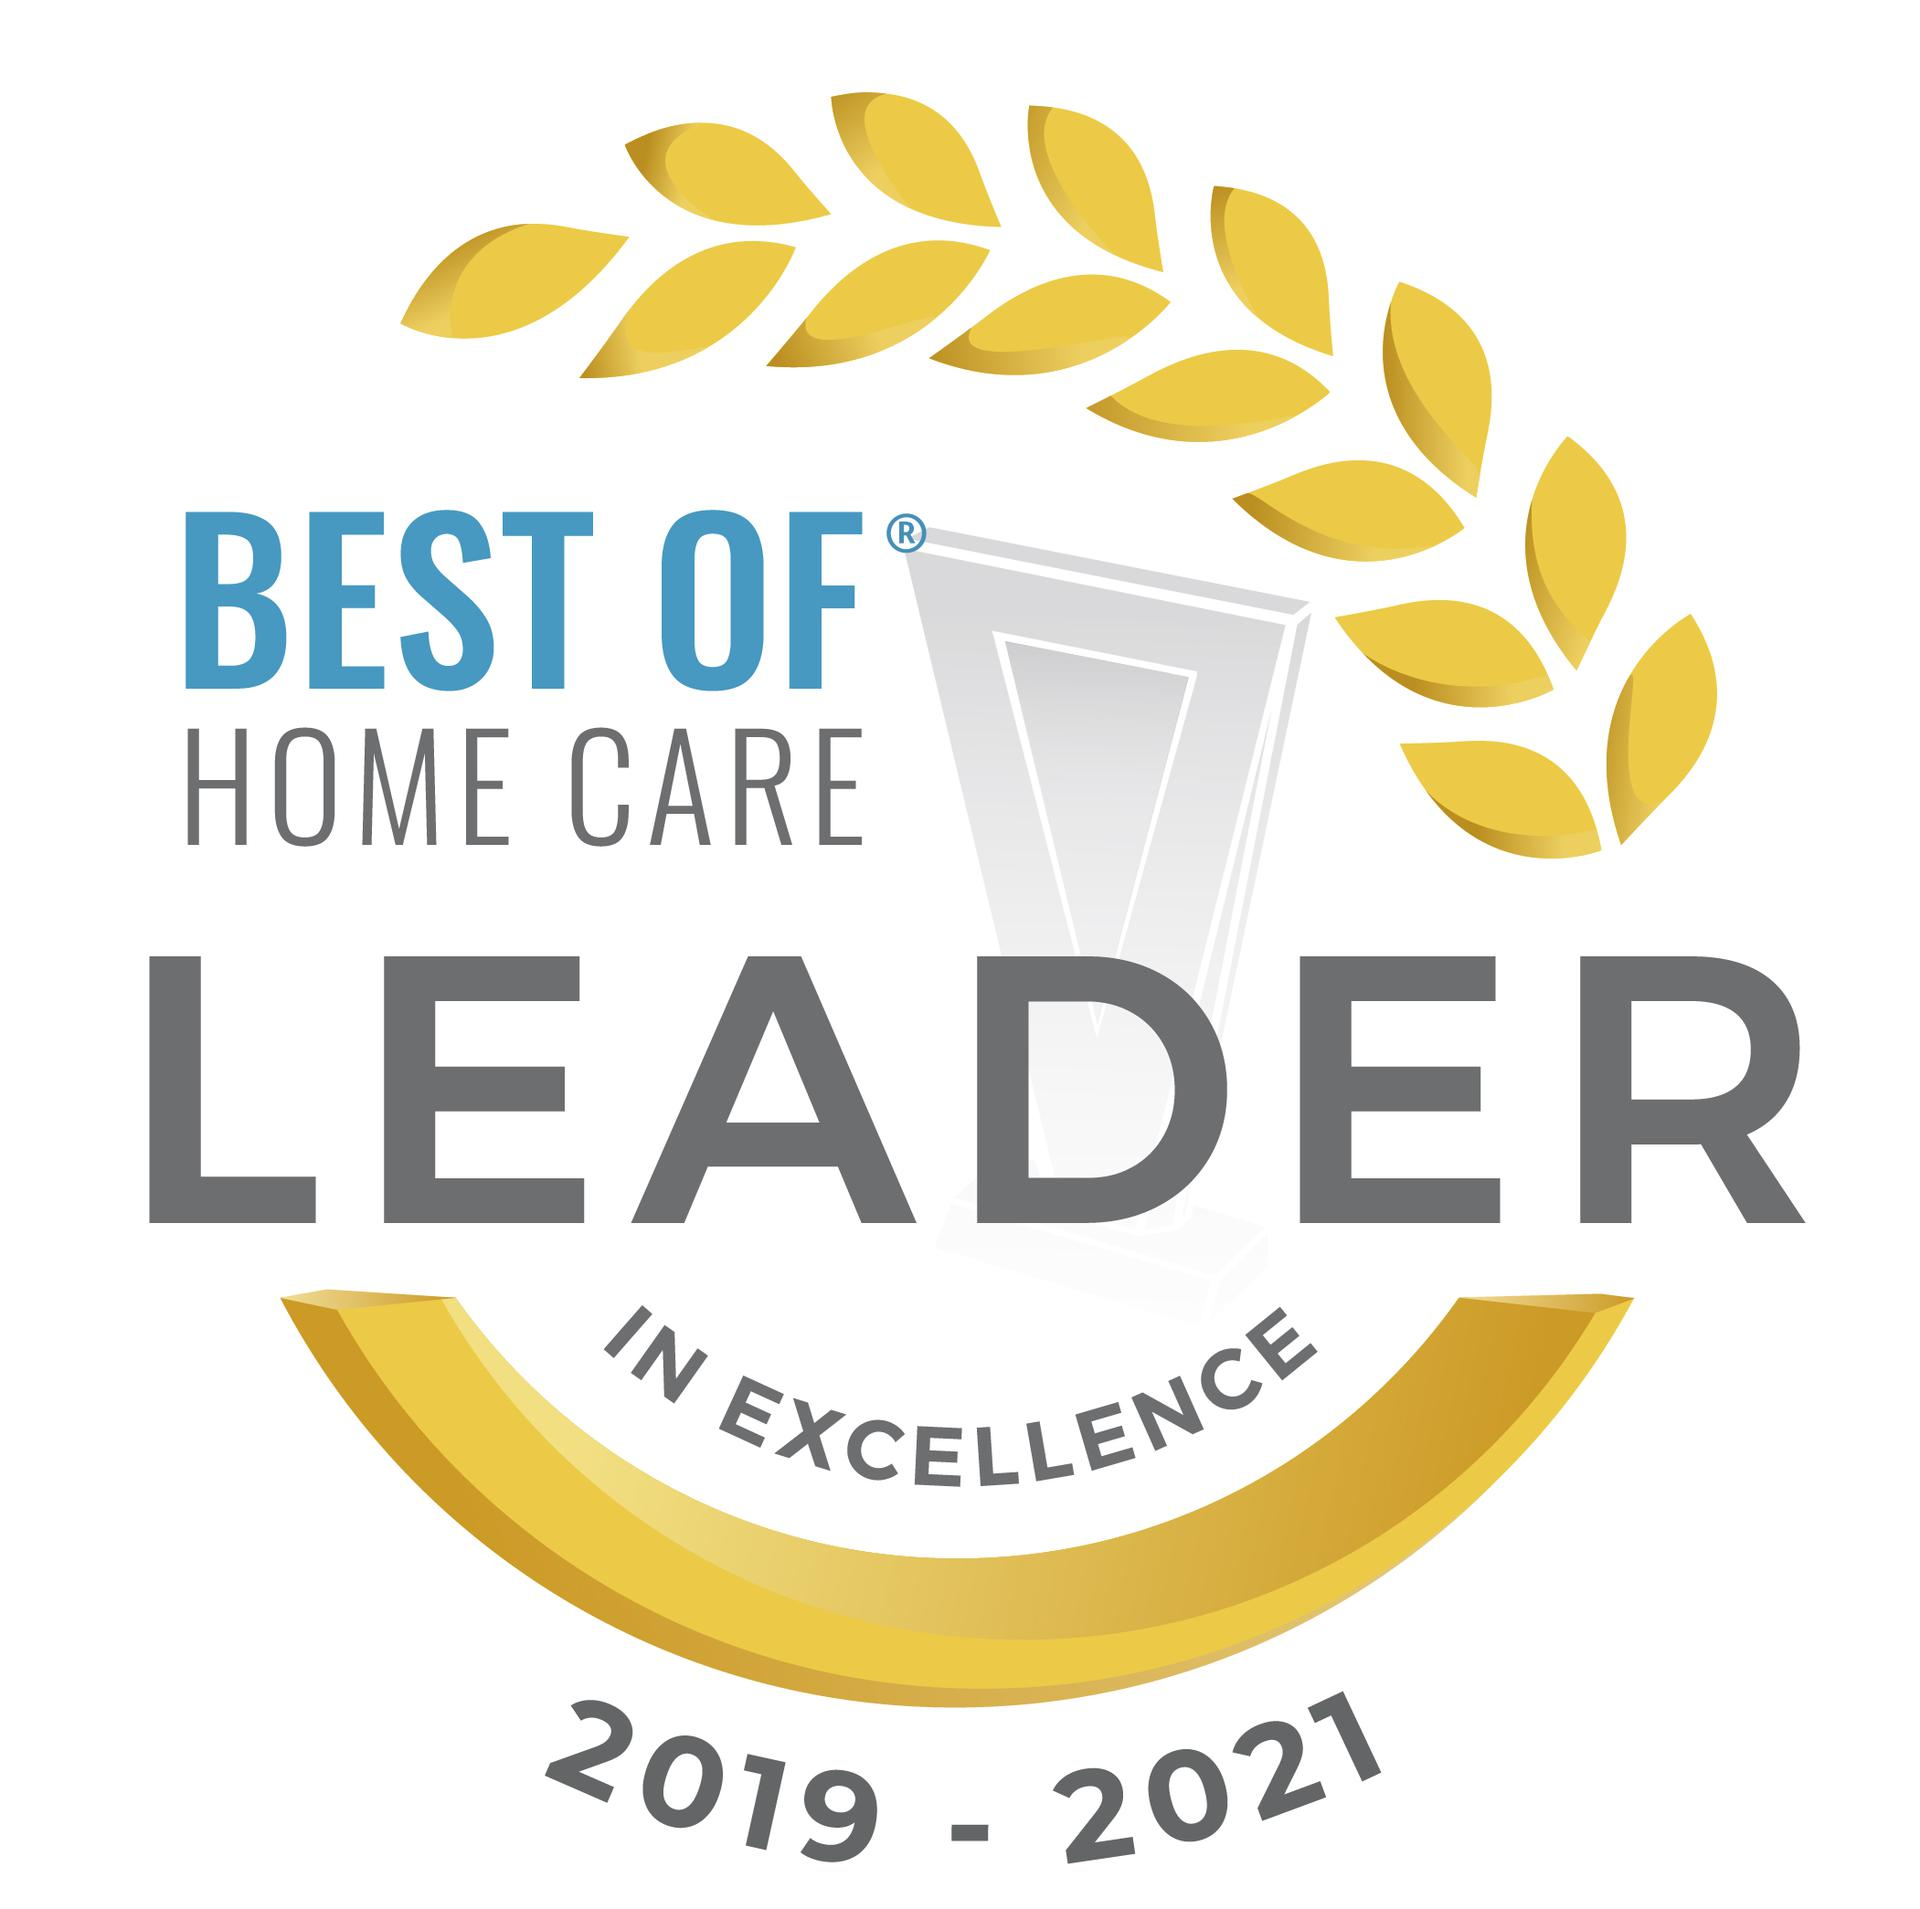 best of home care leader in excellence 2021